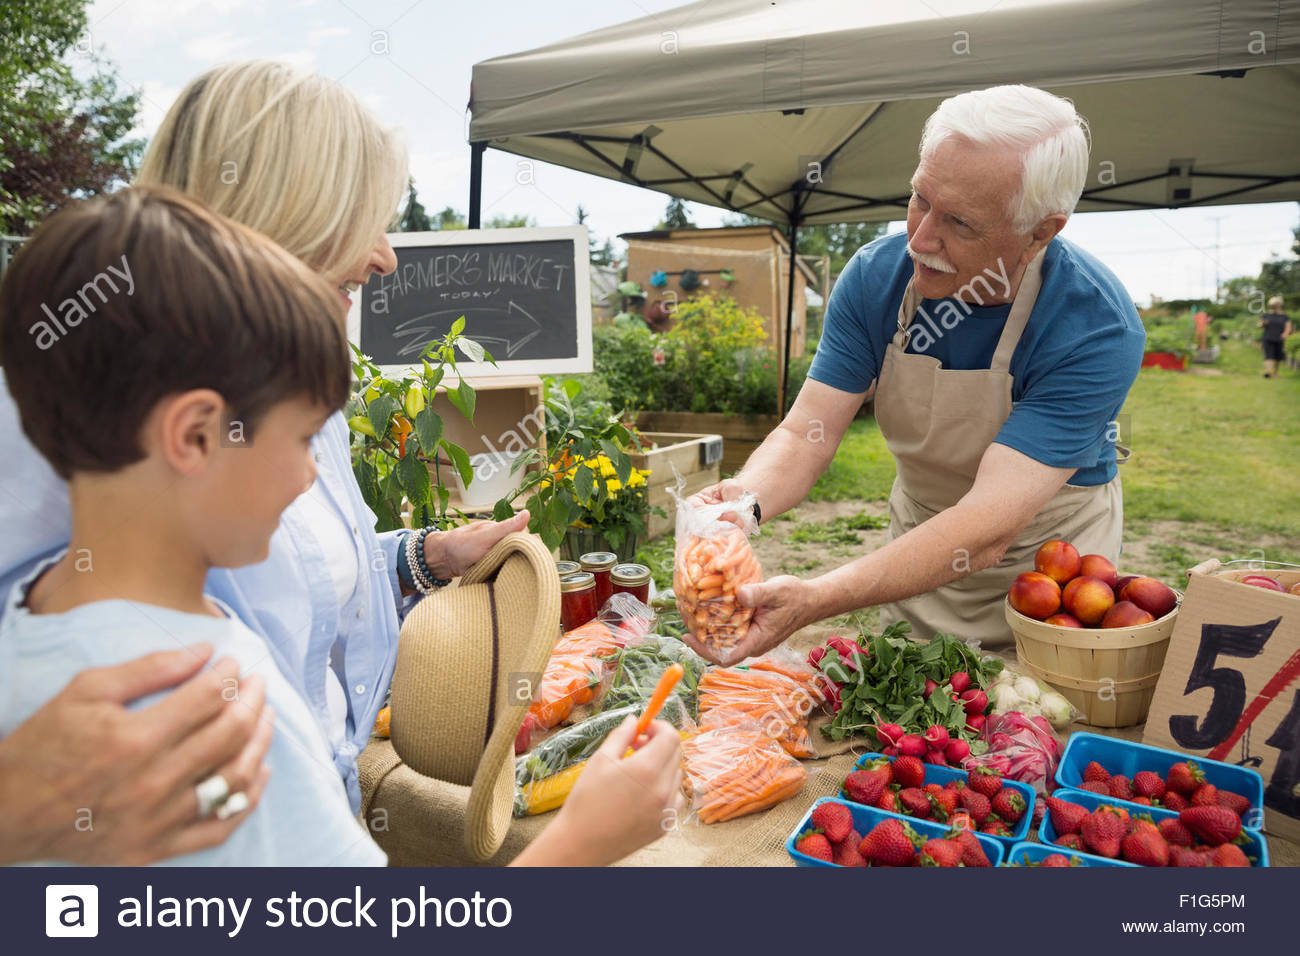 Farmer showing carrots to shoppers farmers market stall - Stock Image